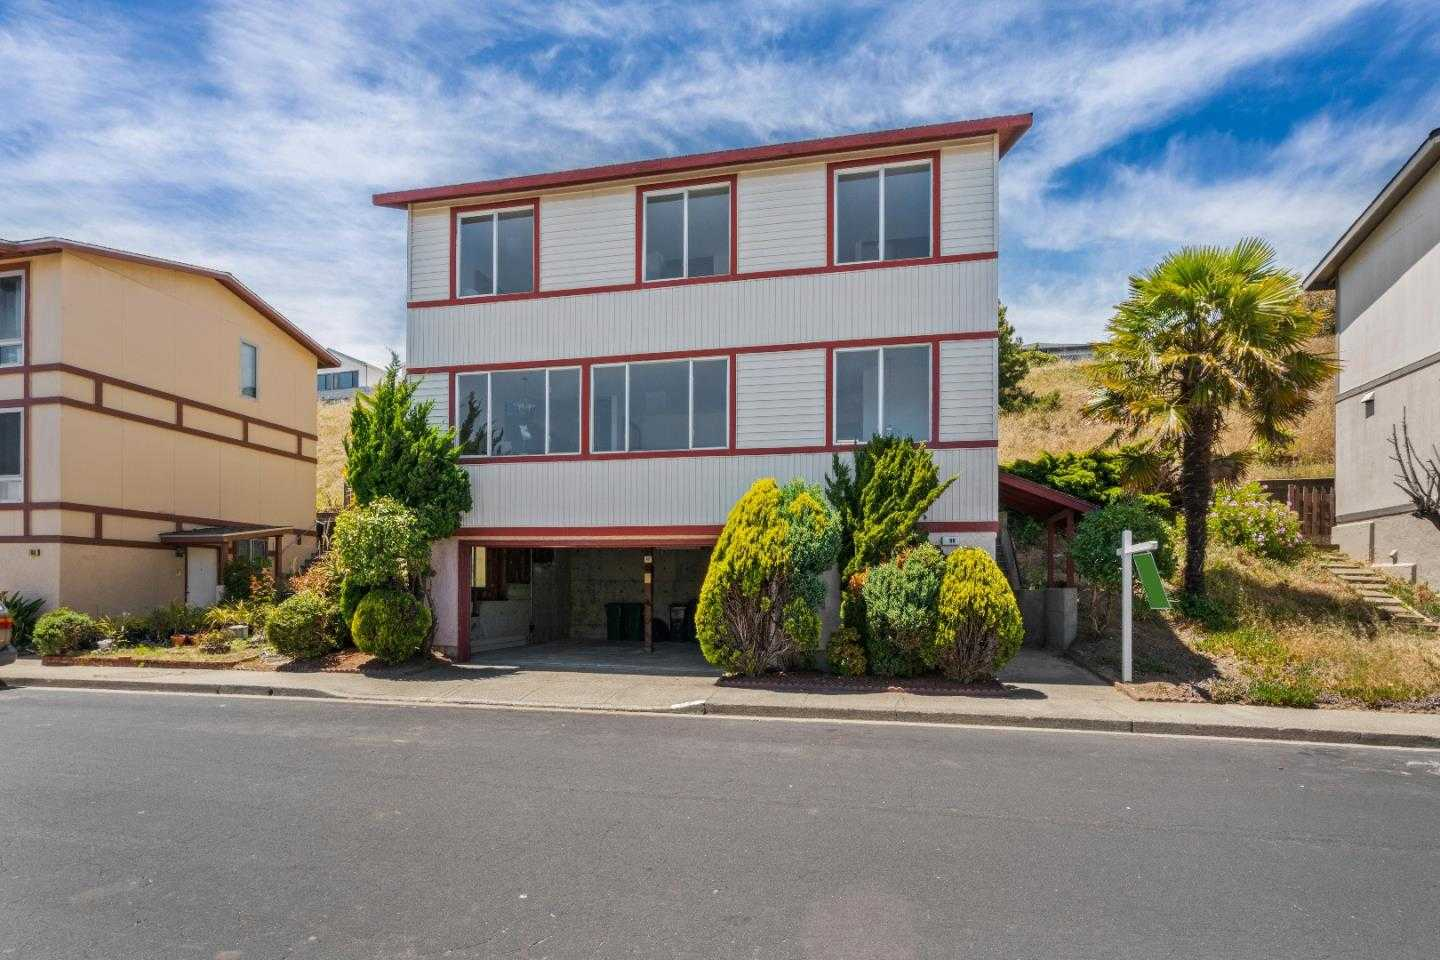 98 Plymouth CIR DALY CITY, CA 94015